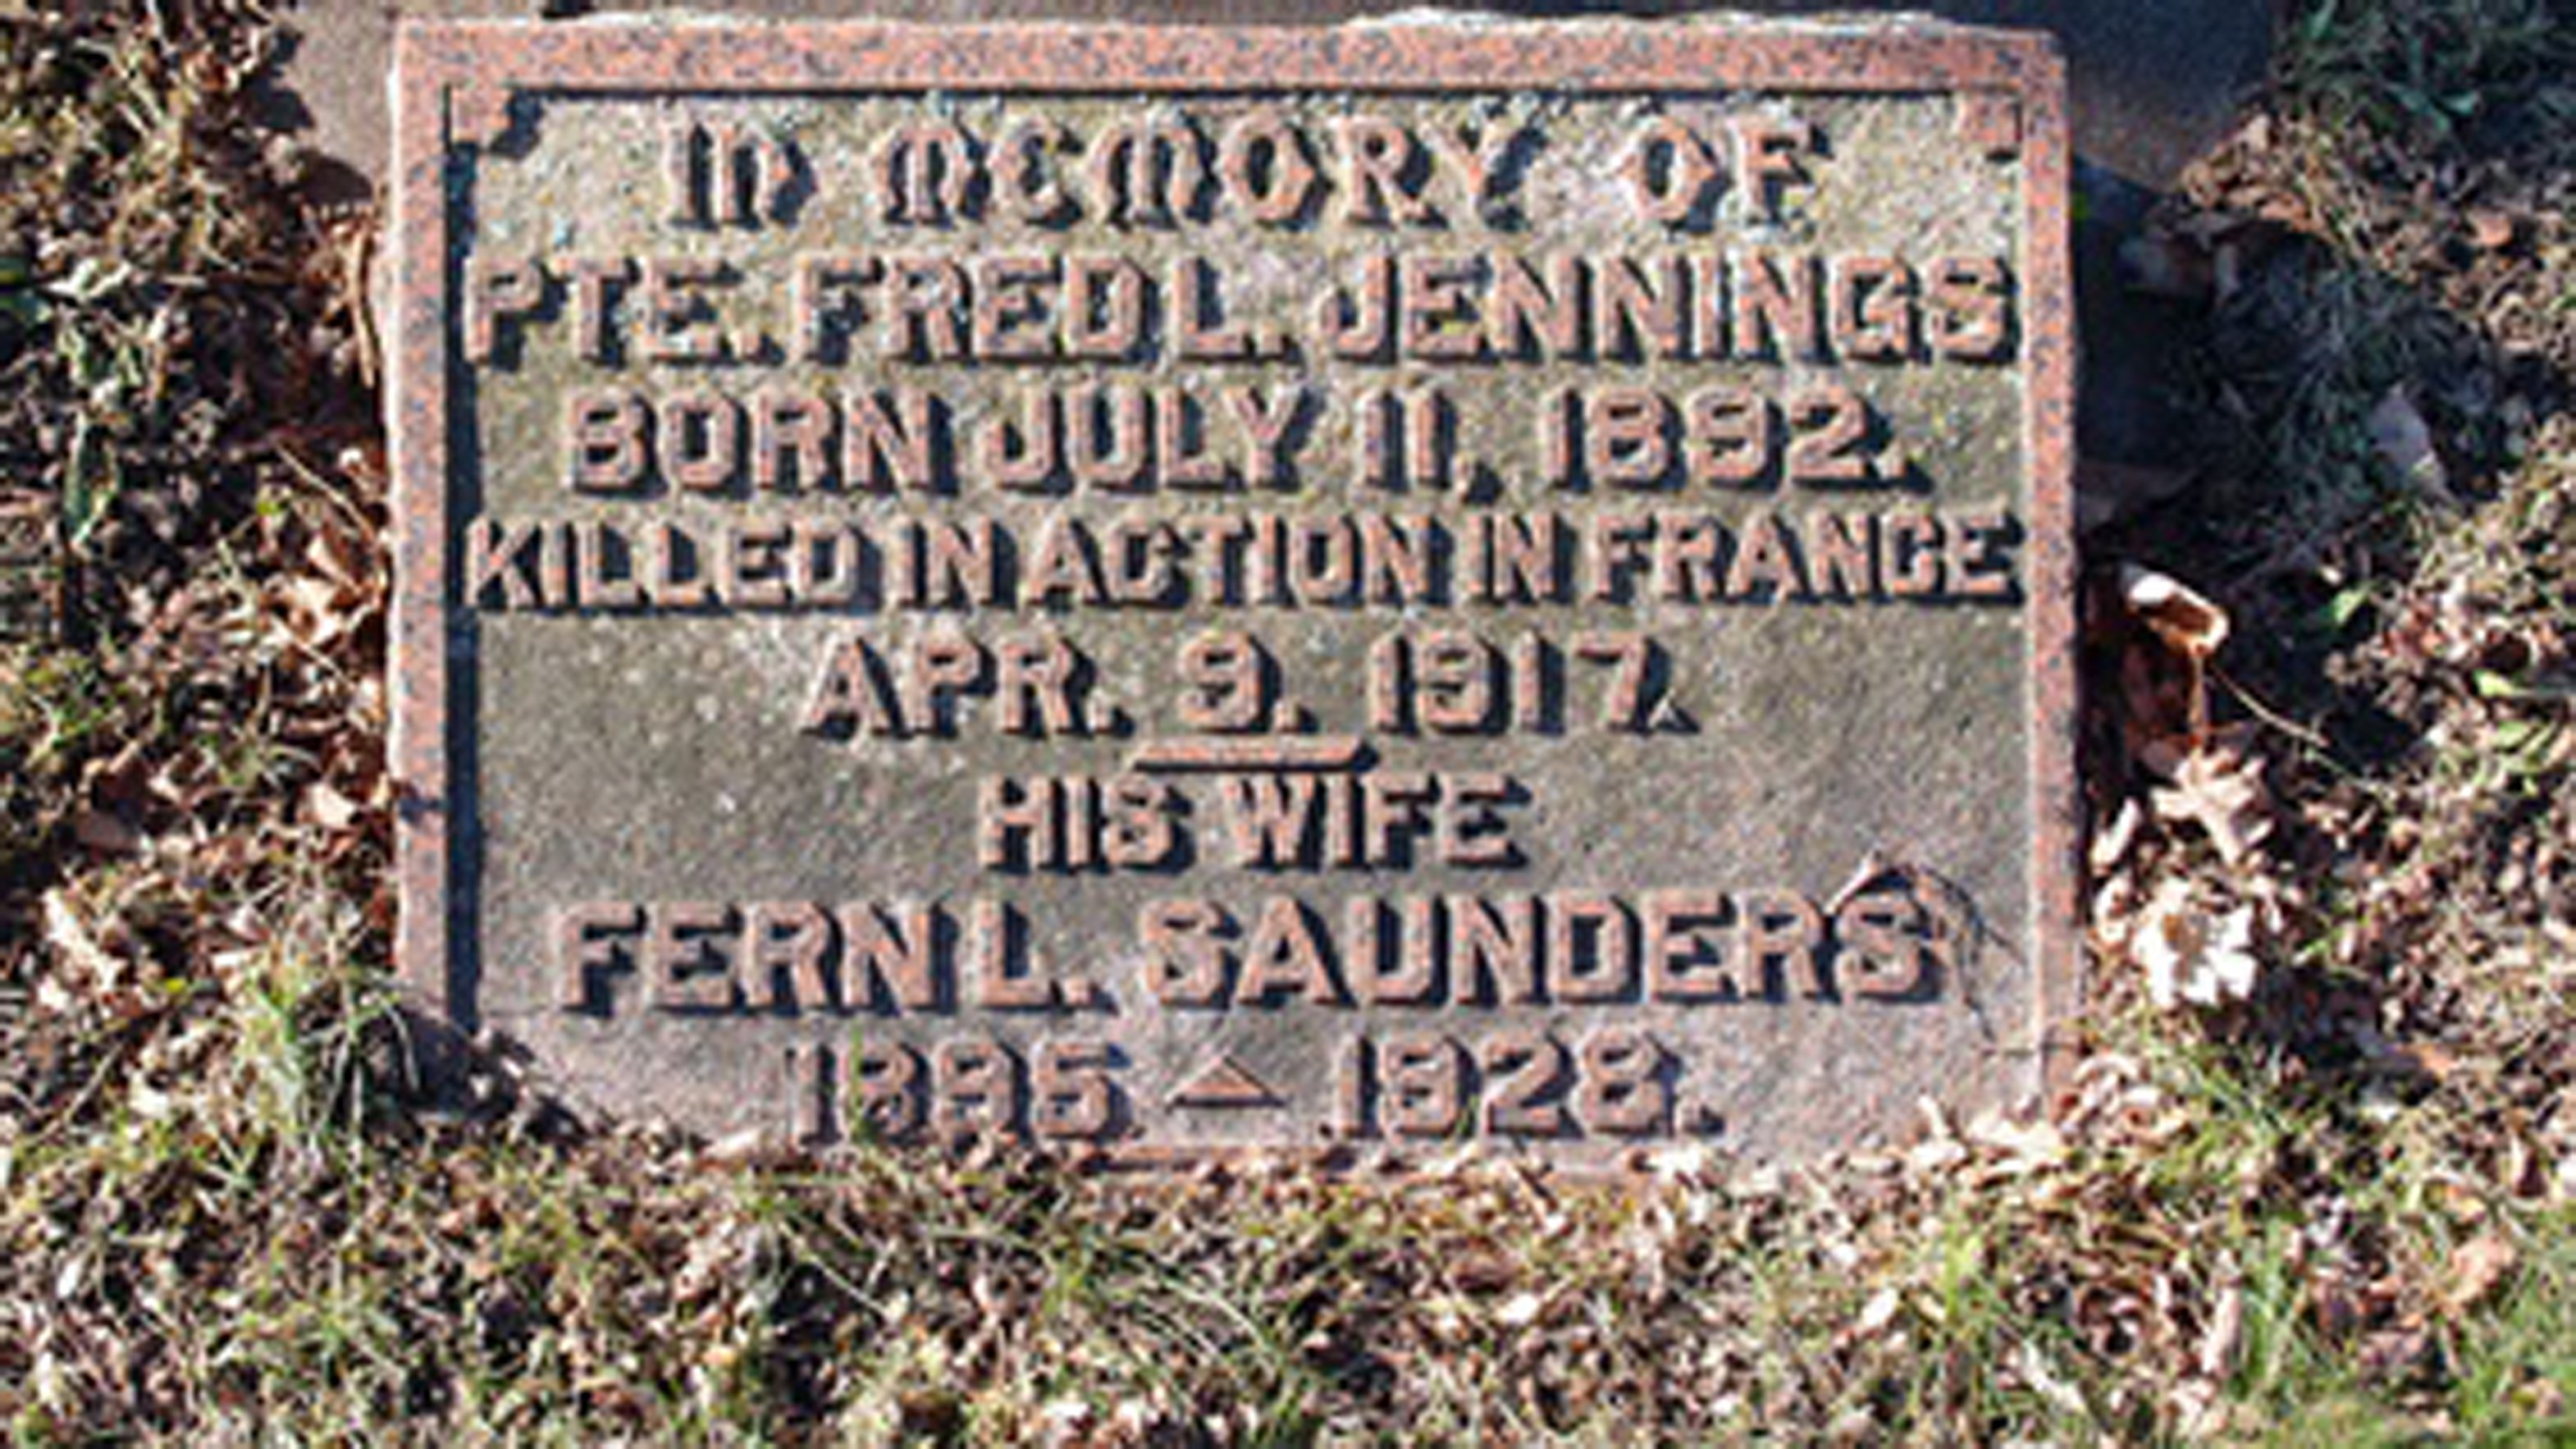 A gravestone bearing the name Pte. Fred L. Jennings